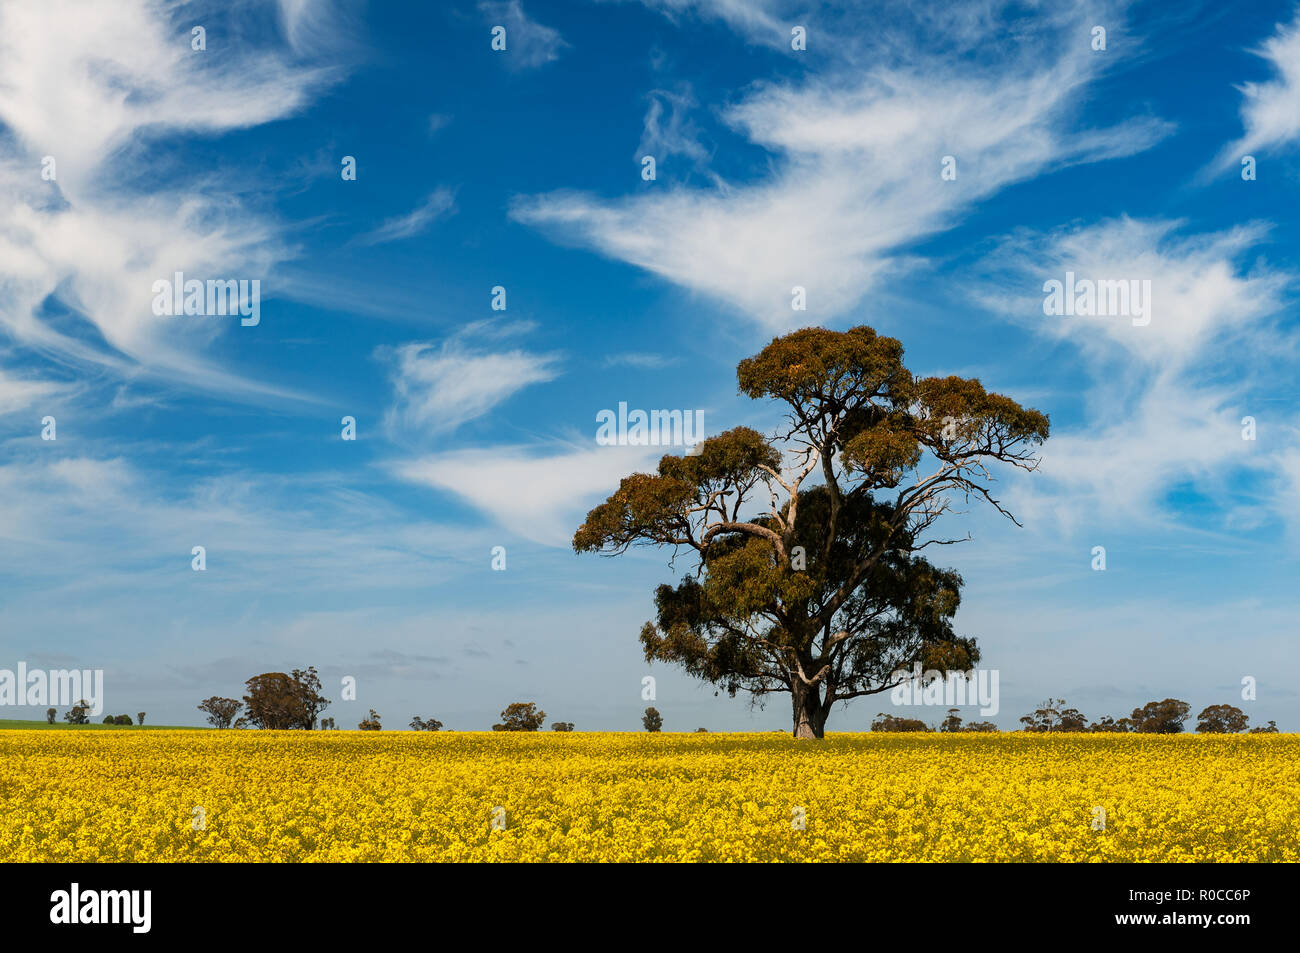 Huge gum tree in a canola field. Stock Photo